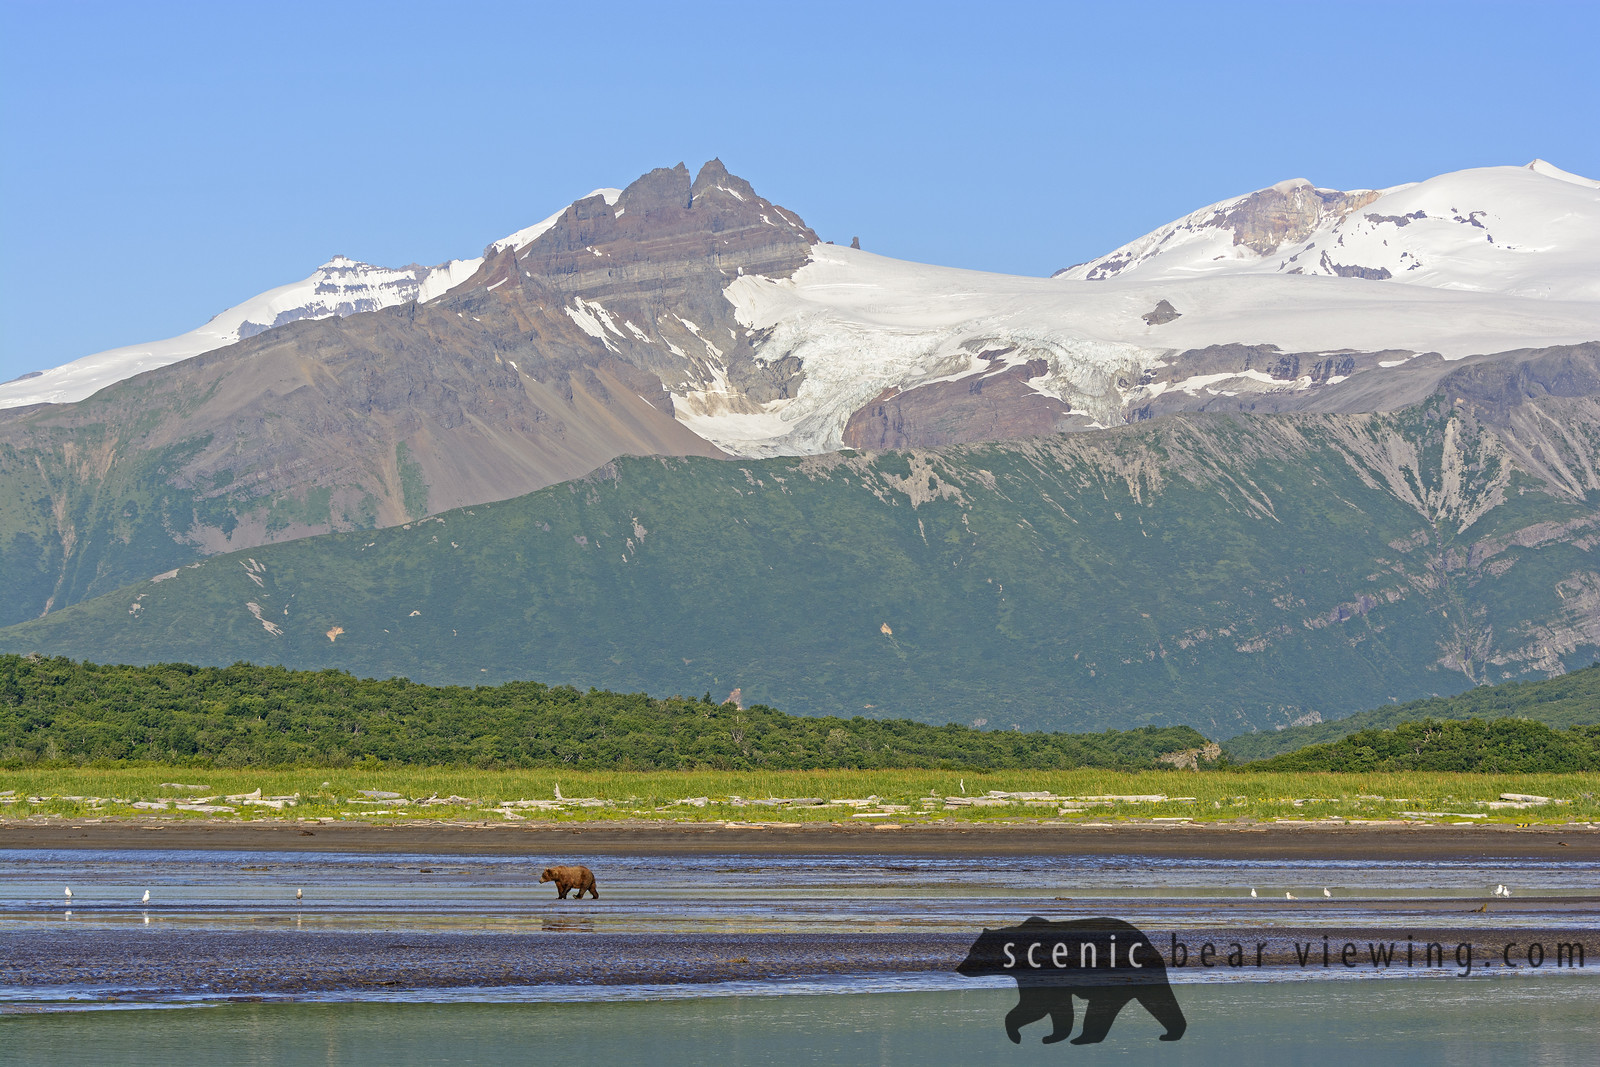 Grizzly Bear Bear Walking on a Tidal Flat Beneath the Mountains